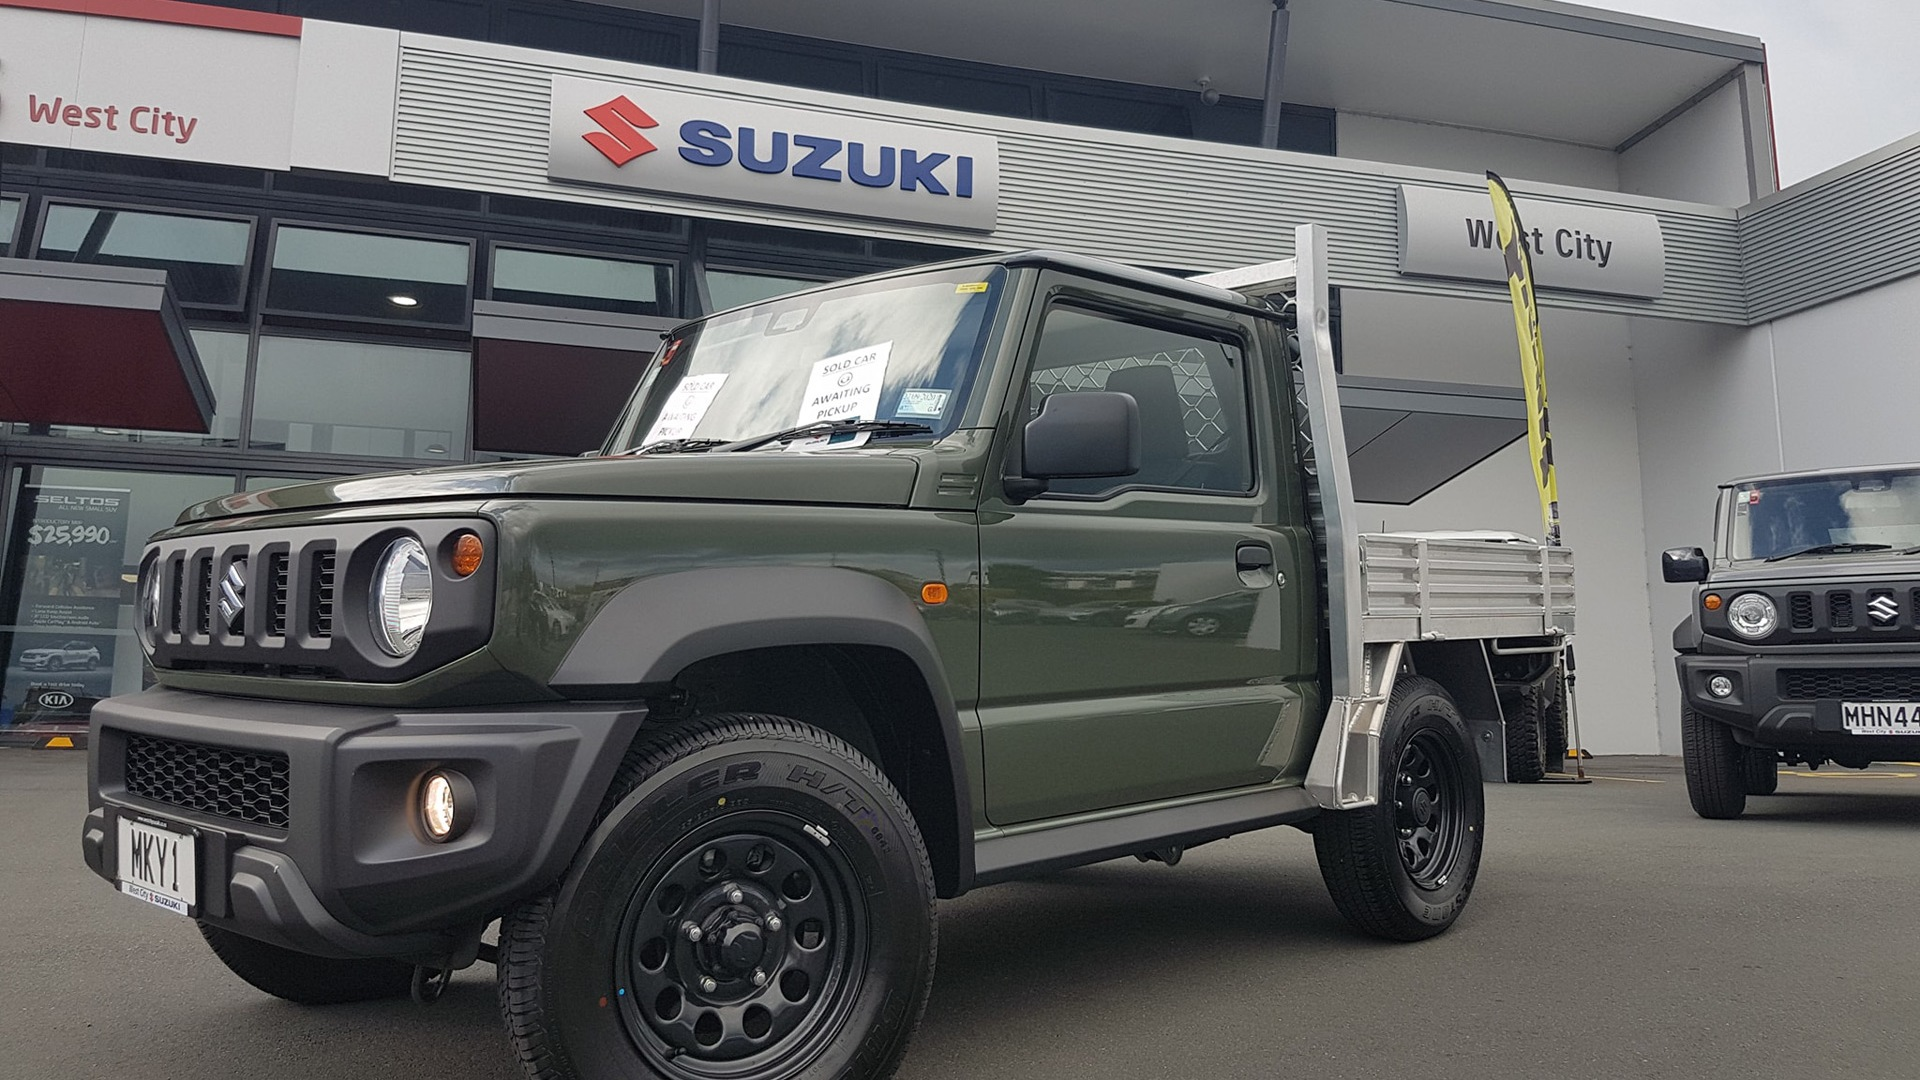 Would Like To Know The Secret Behind Suzuki Cars & Trucks